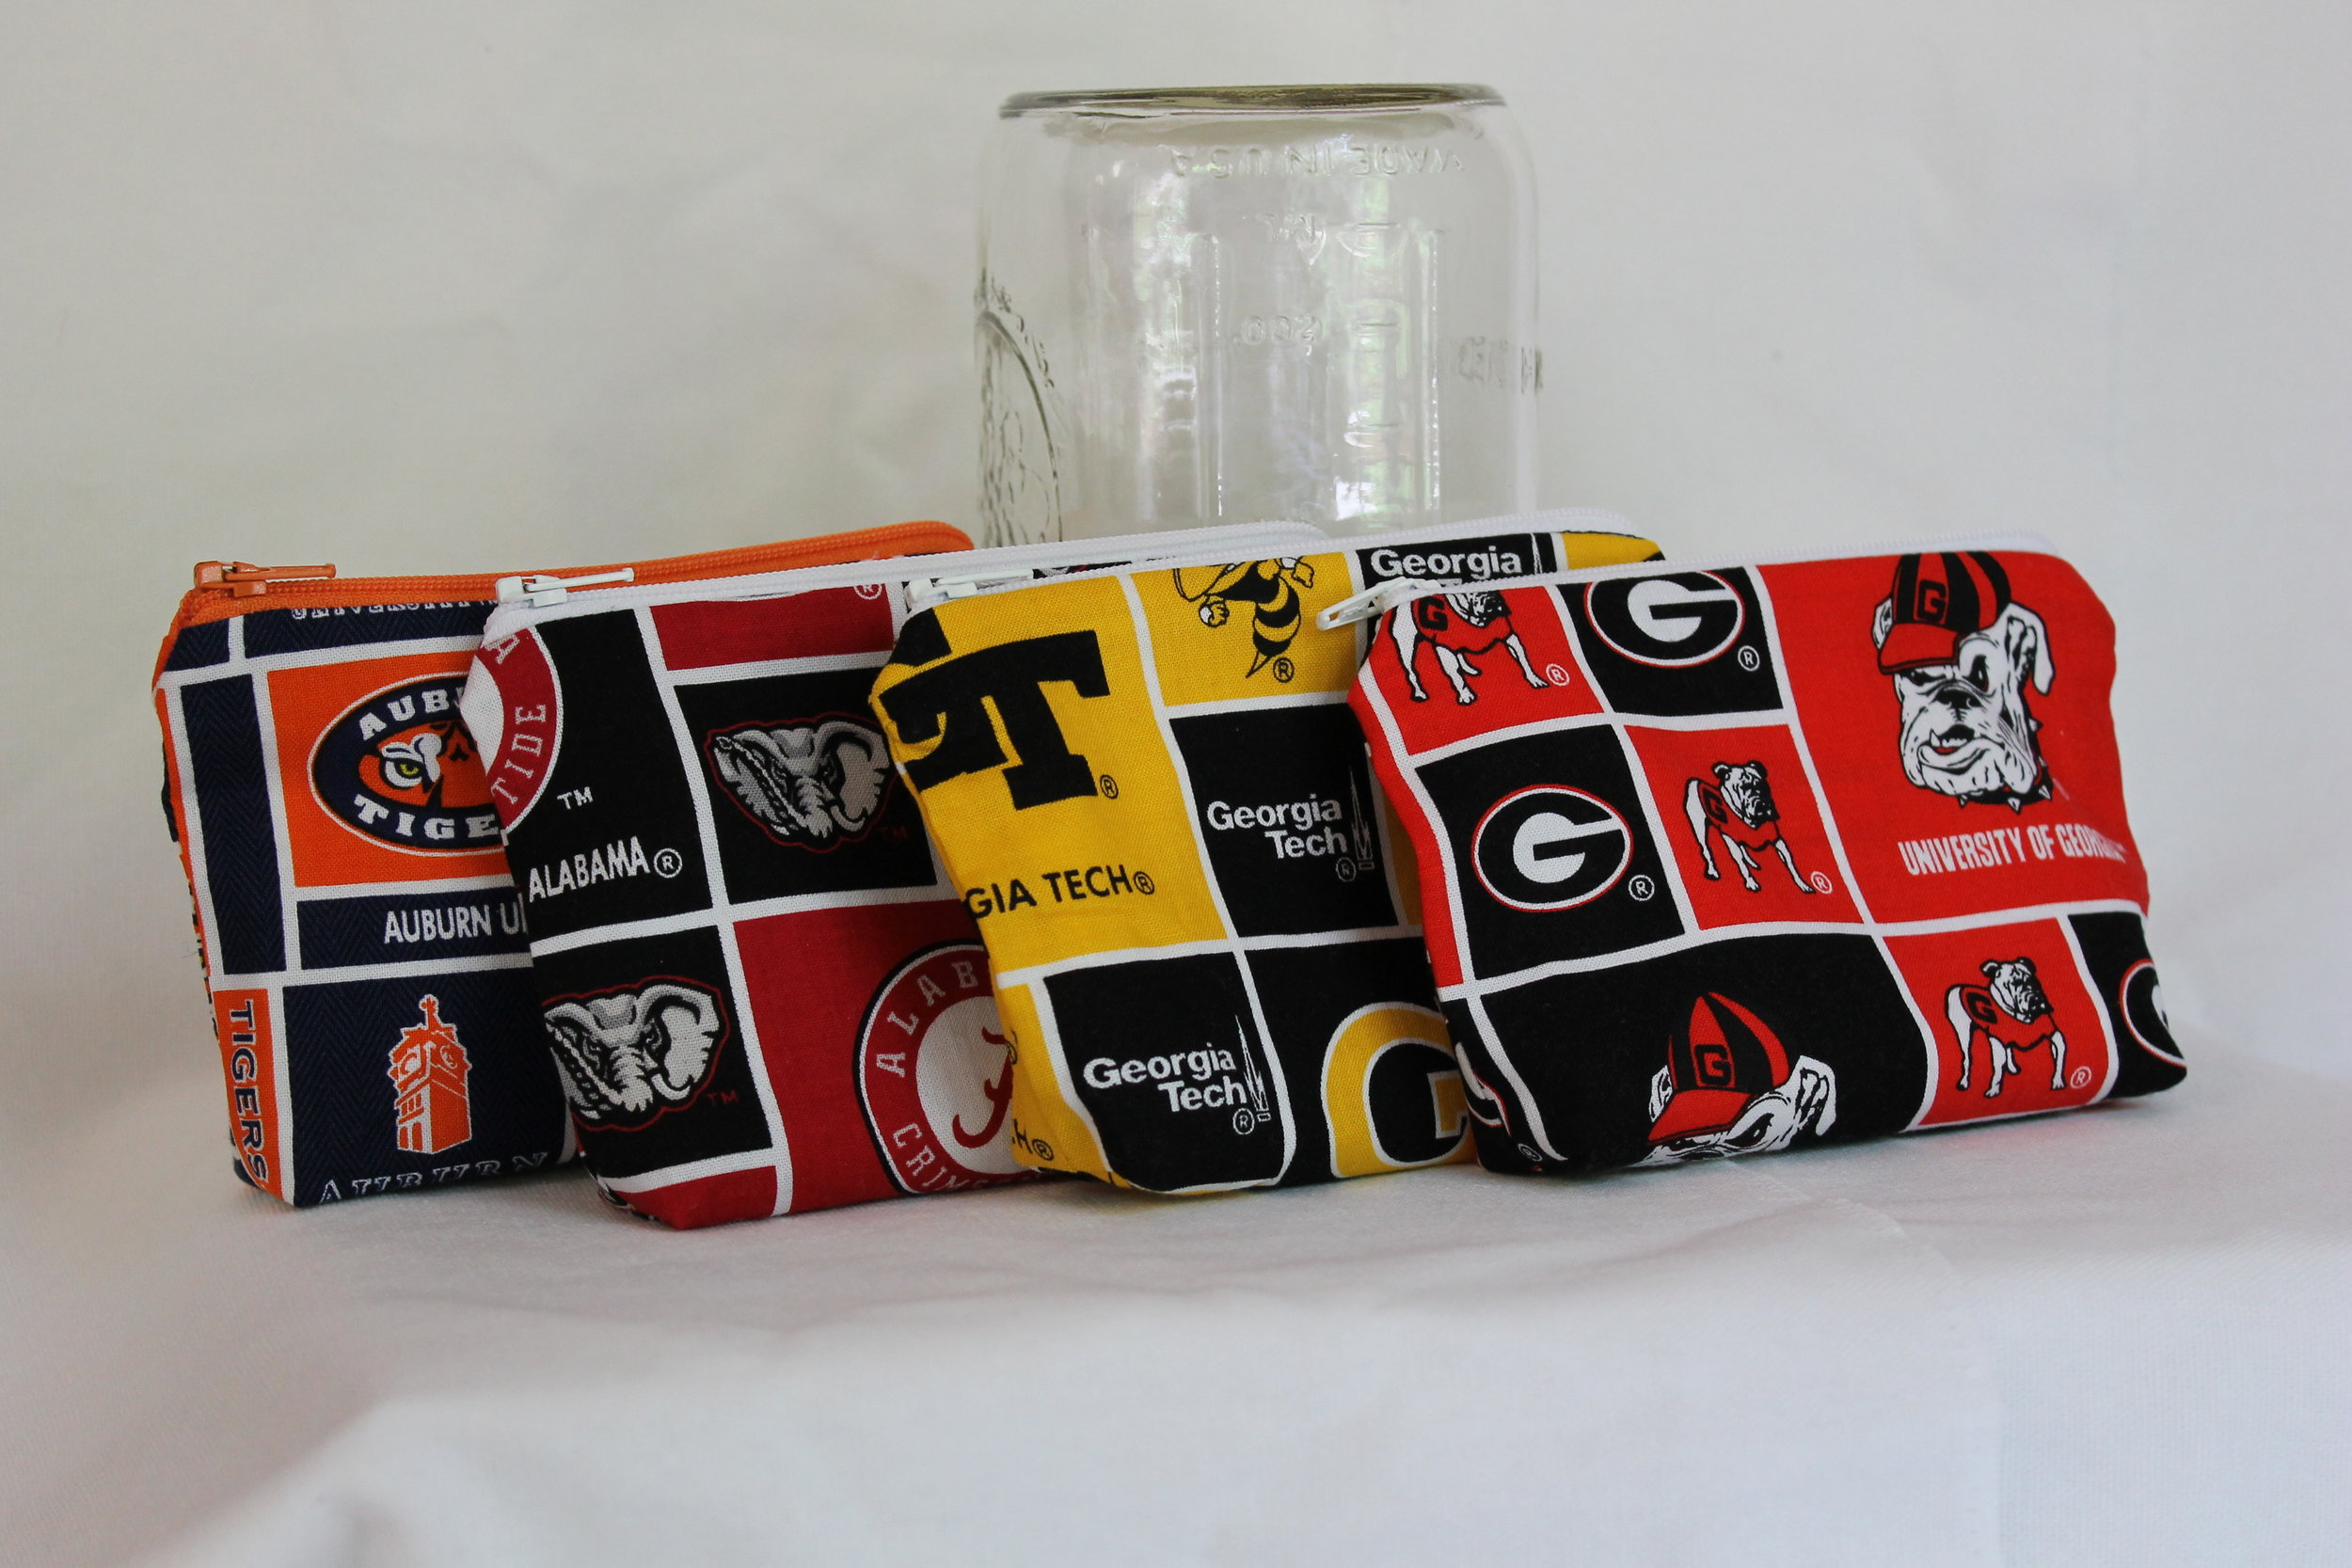 I thought that these would be fabulous for those who love their football teams.